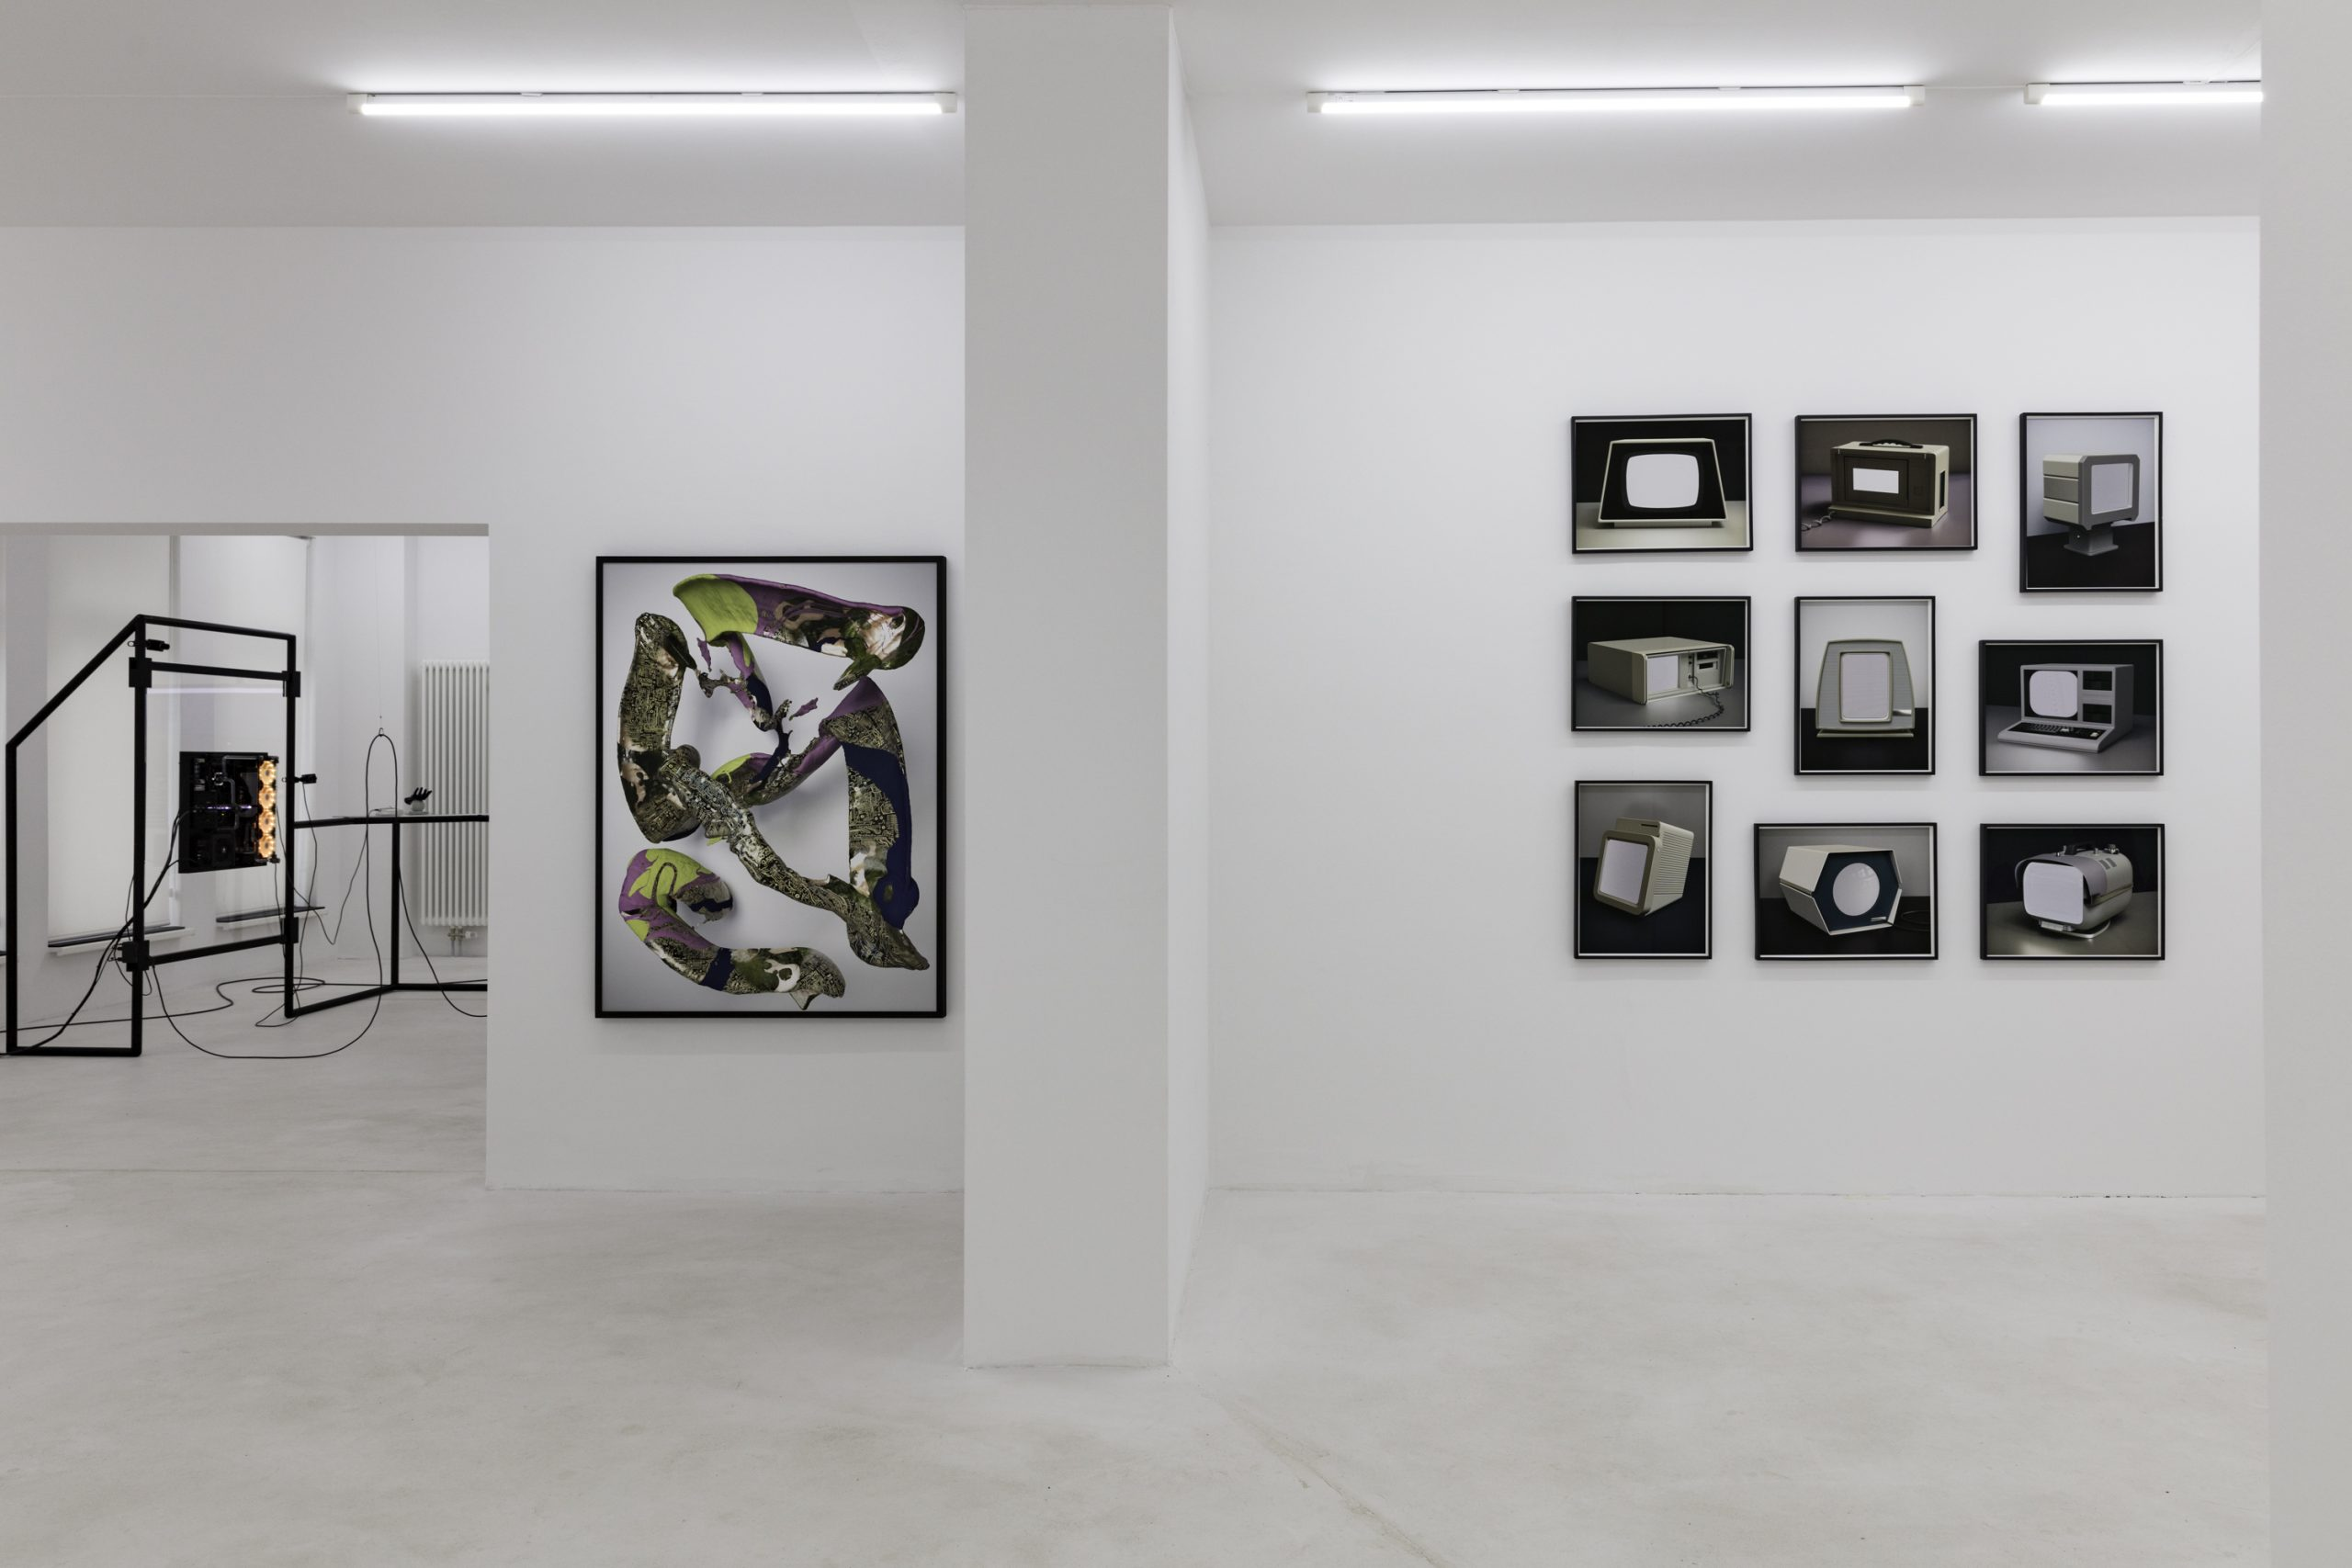 Substance, DAM Gallery, Exhibition View